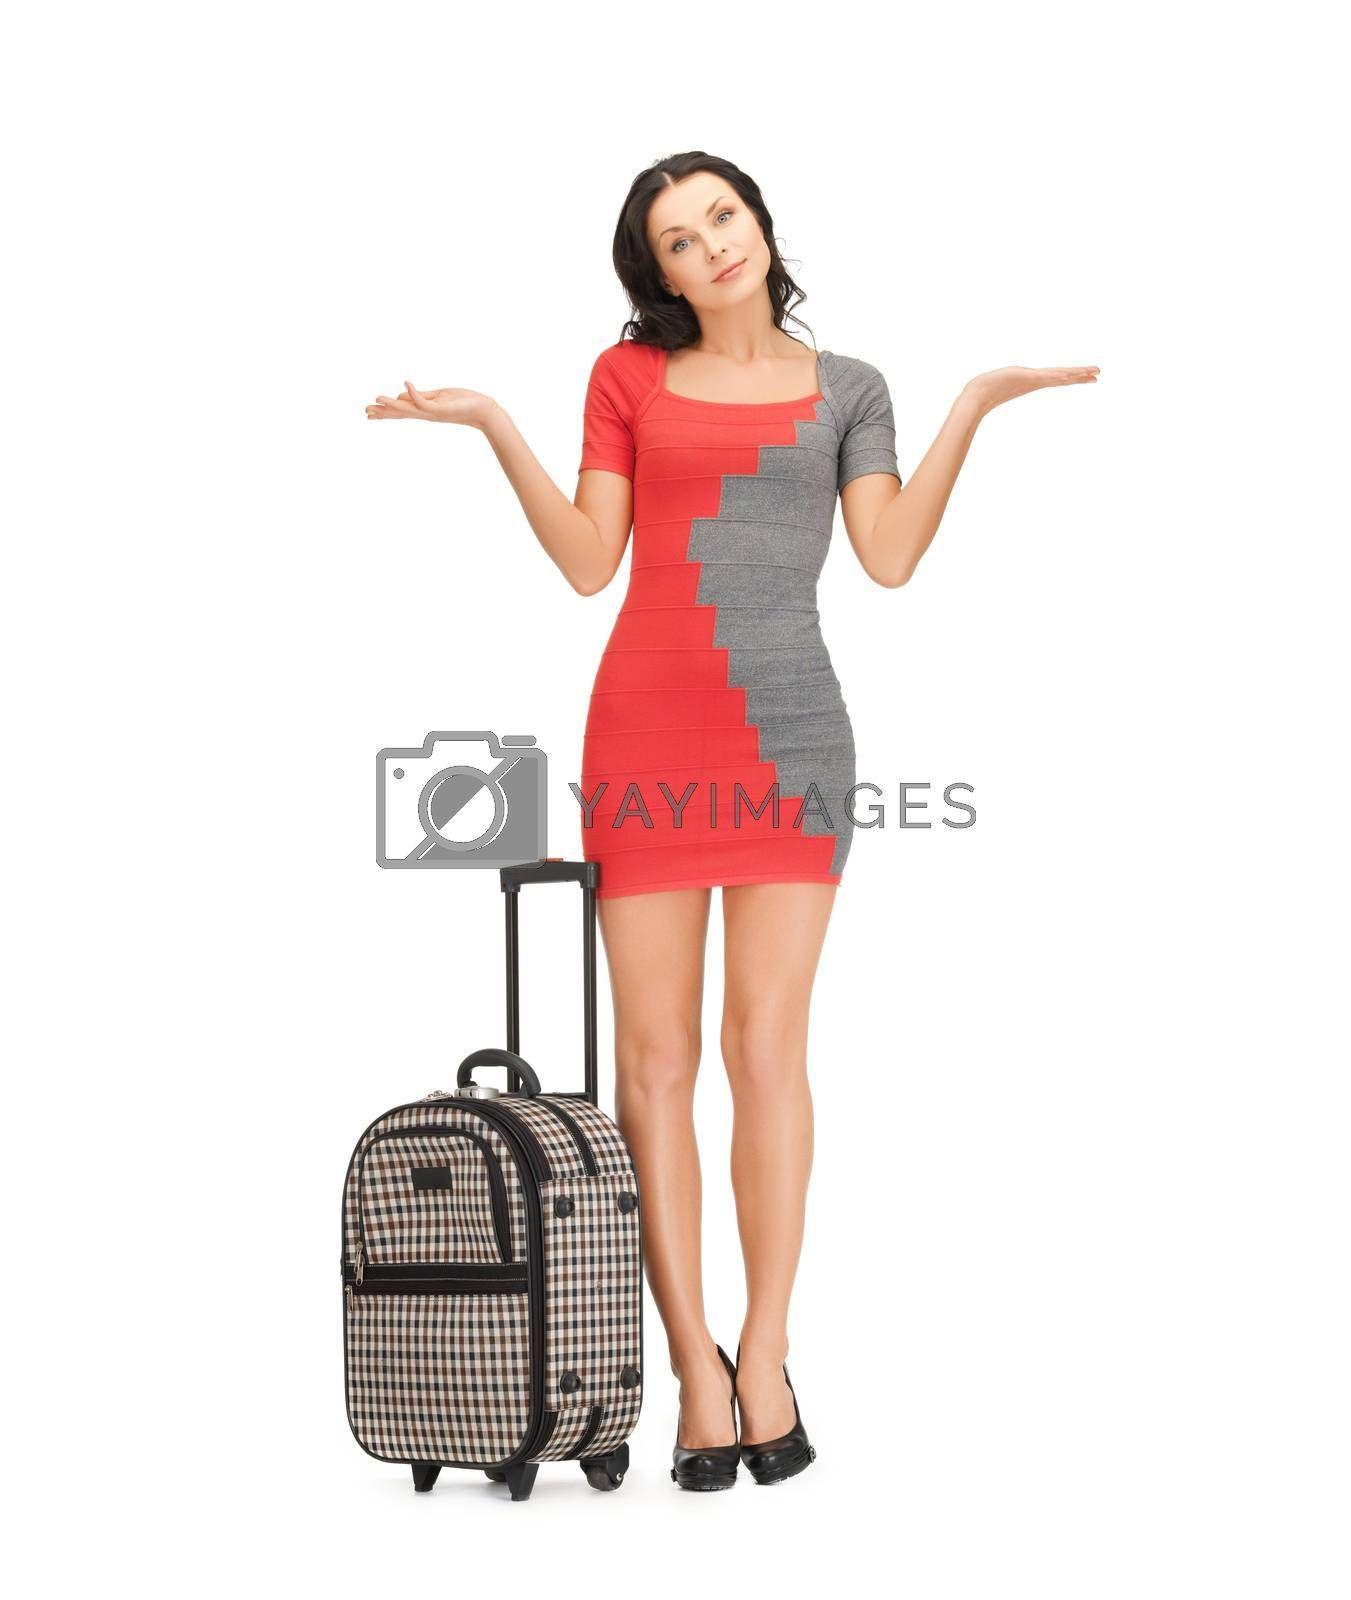 doubting woman with suitcase by dolgachov